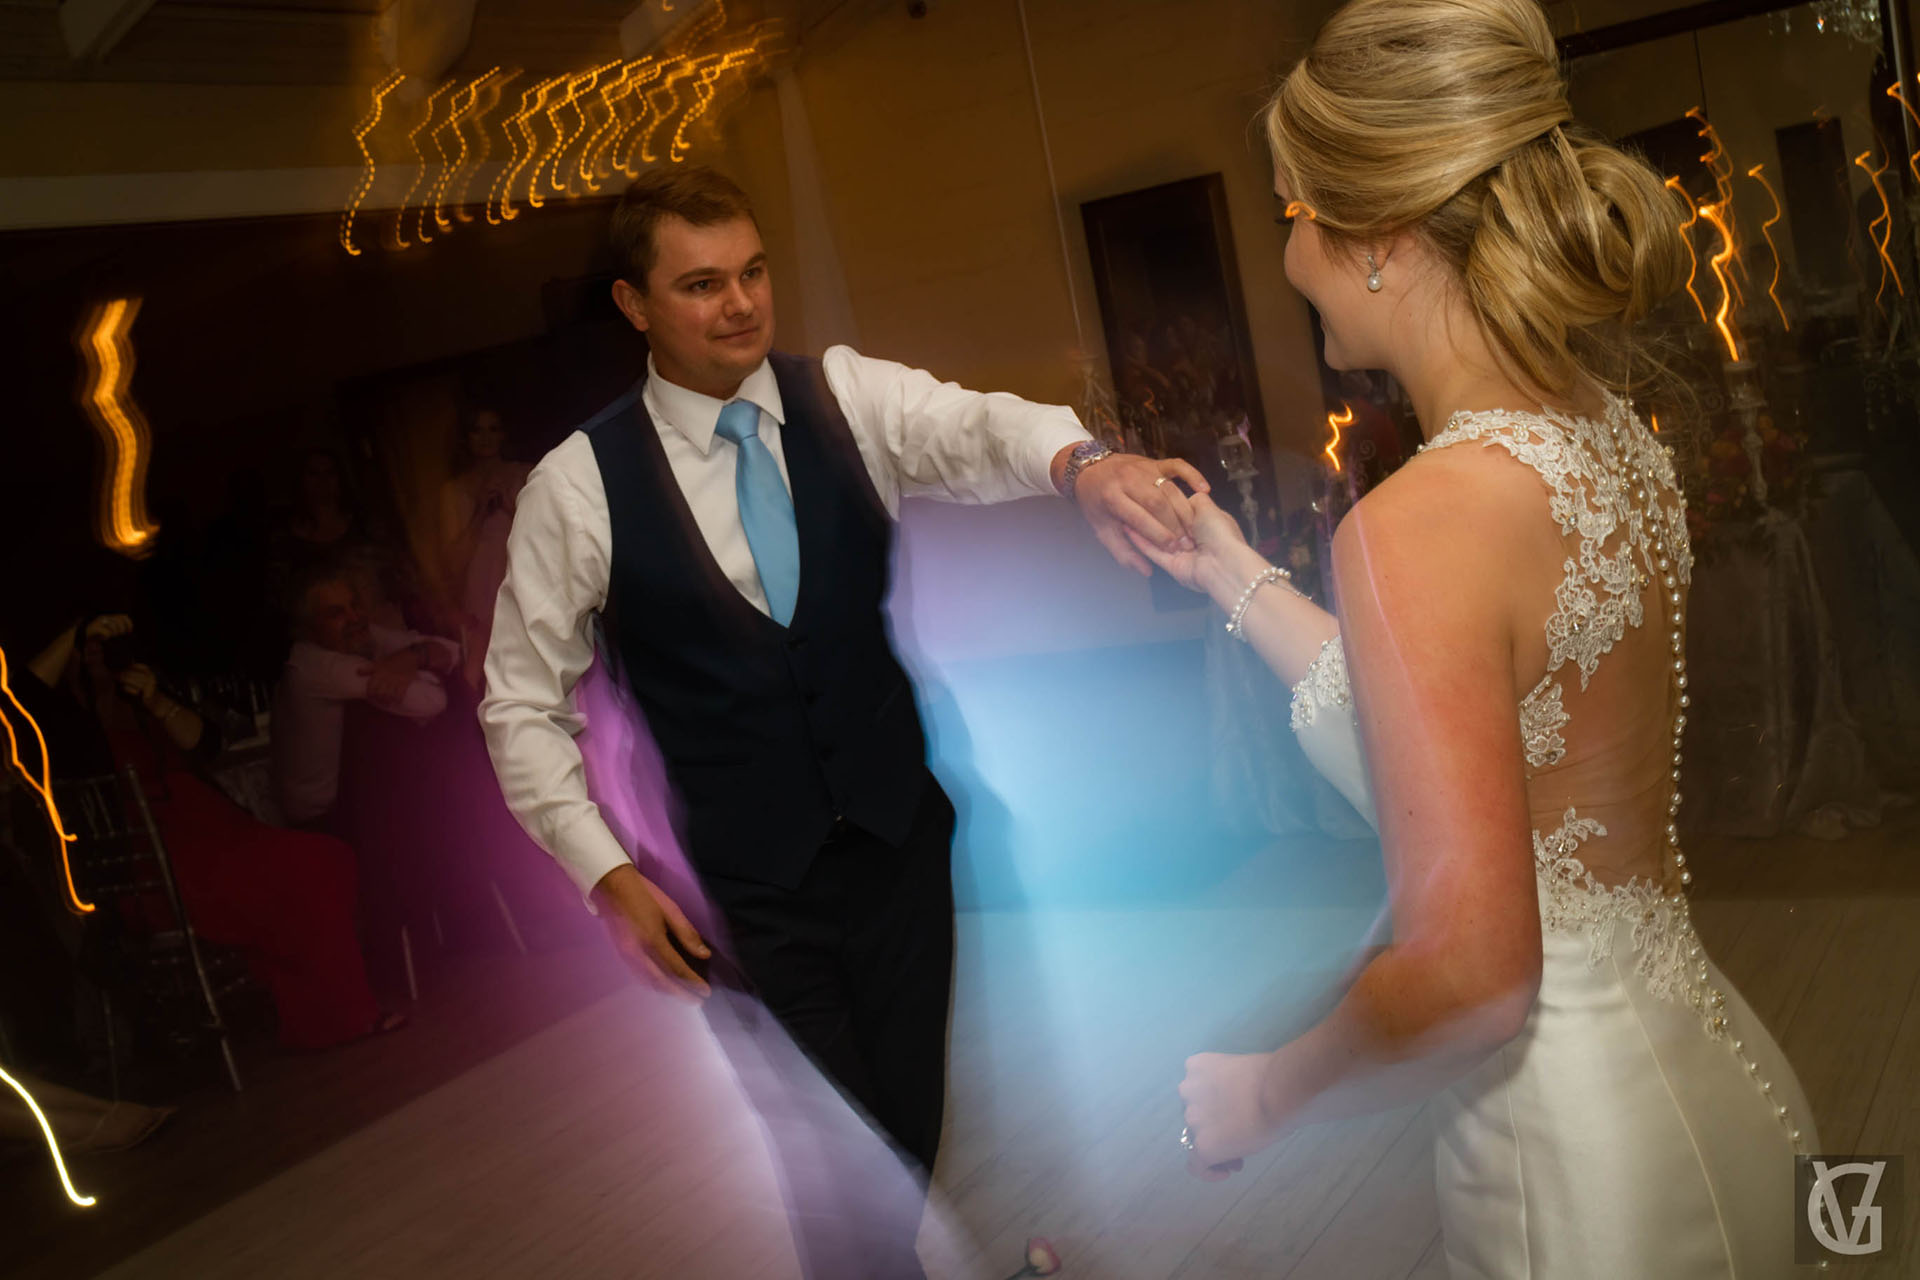 A newlywed couple dancing their first dance together with lights and a fog machine